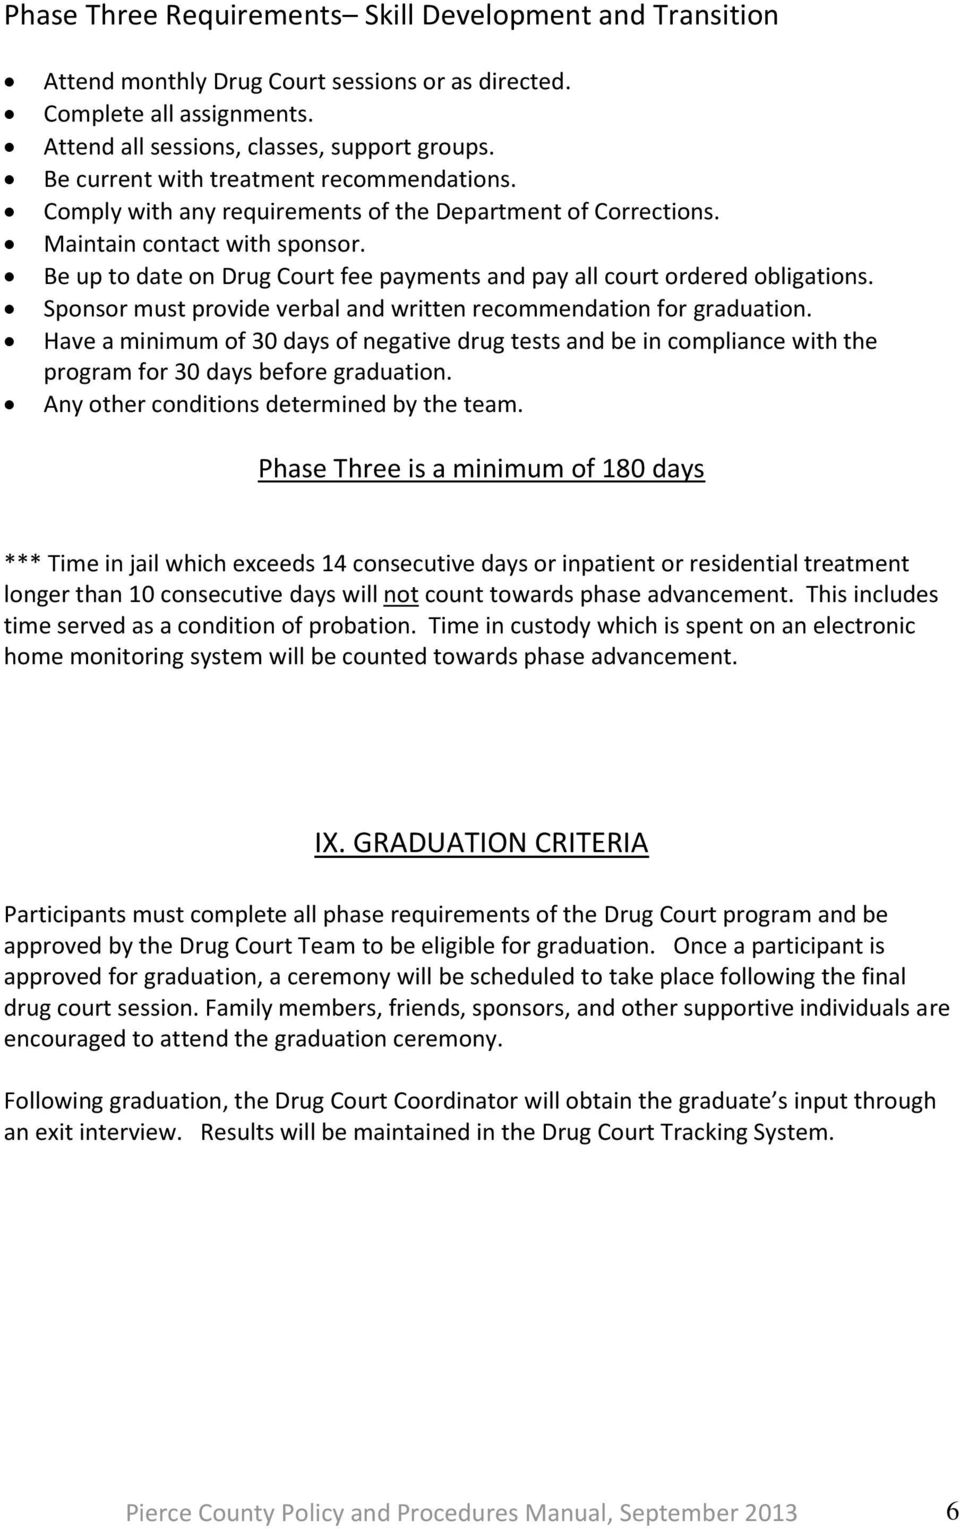 Be up to date on Drug Court fee payments and pay all court ordered obligations. Sponsor must provide verbal and written recommendation for graduation.